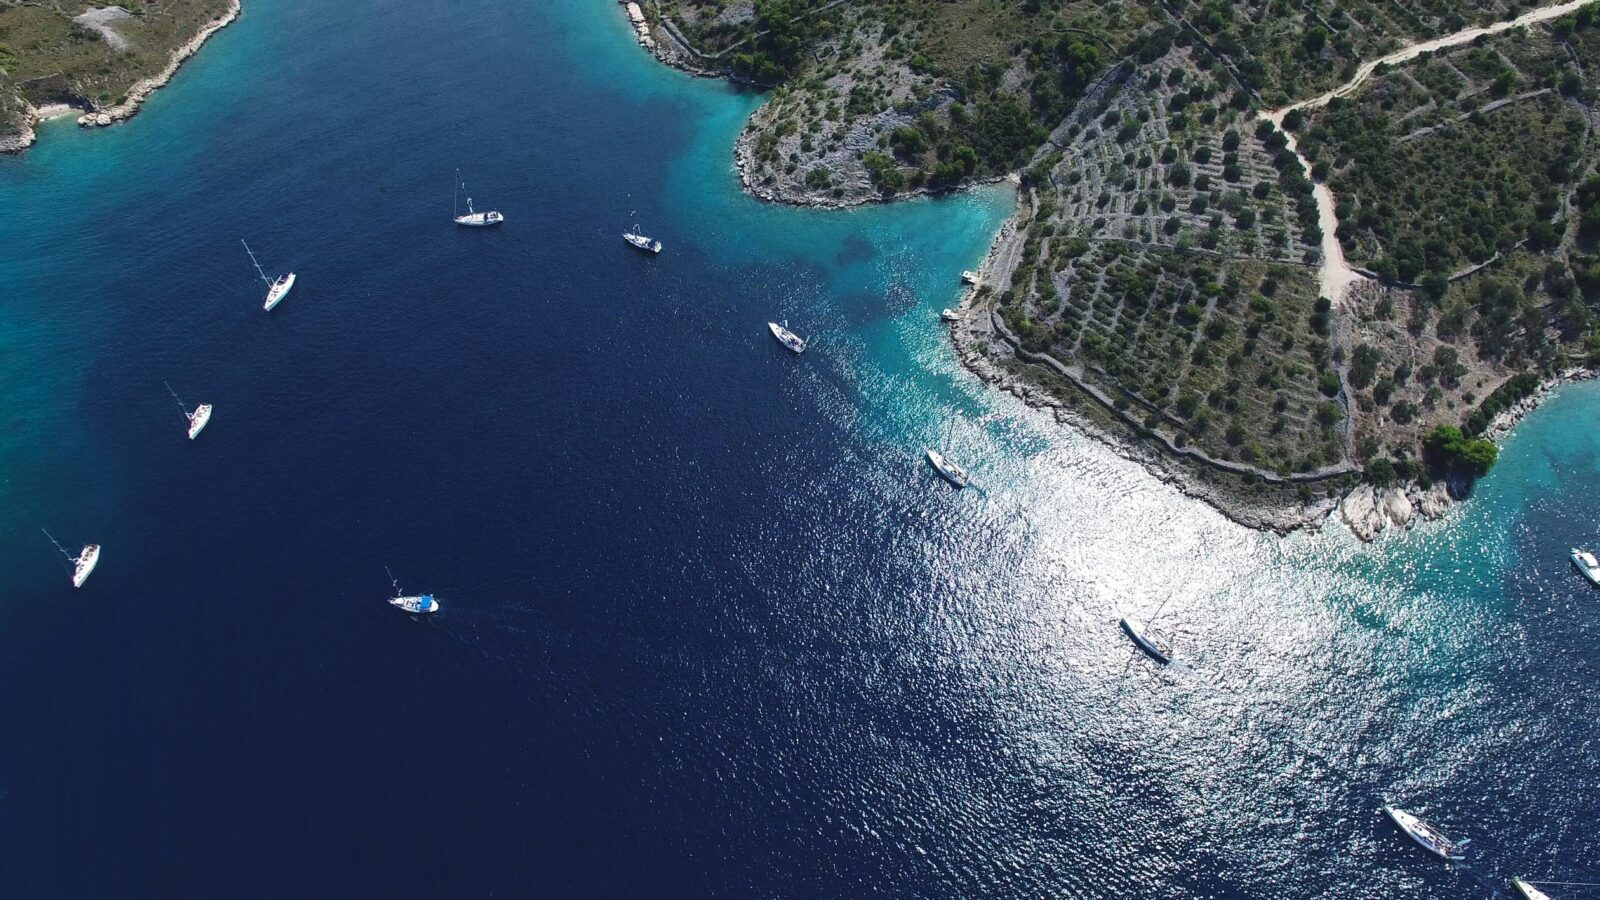 Complete guide to sailing in the Mediterranean in 2020/21